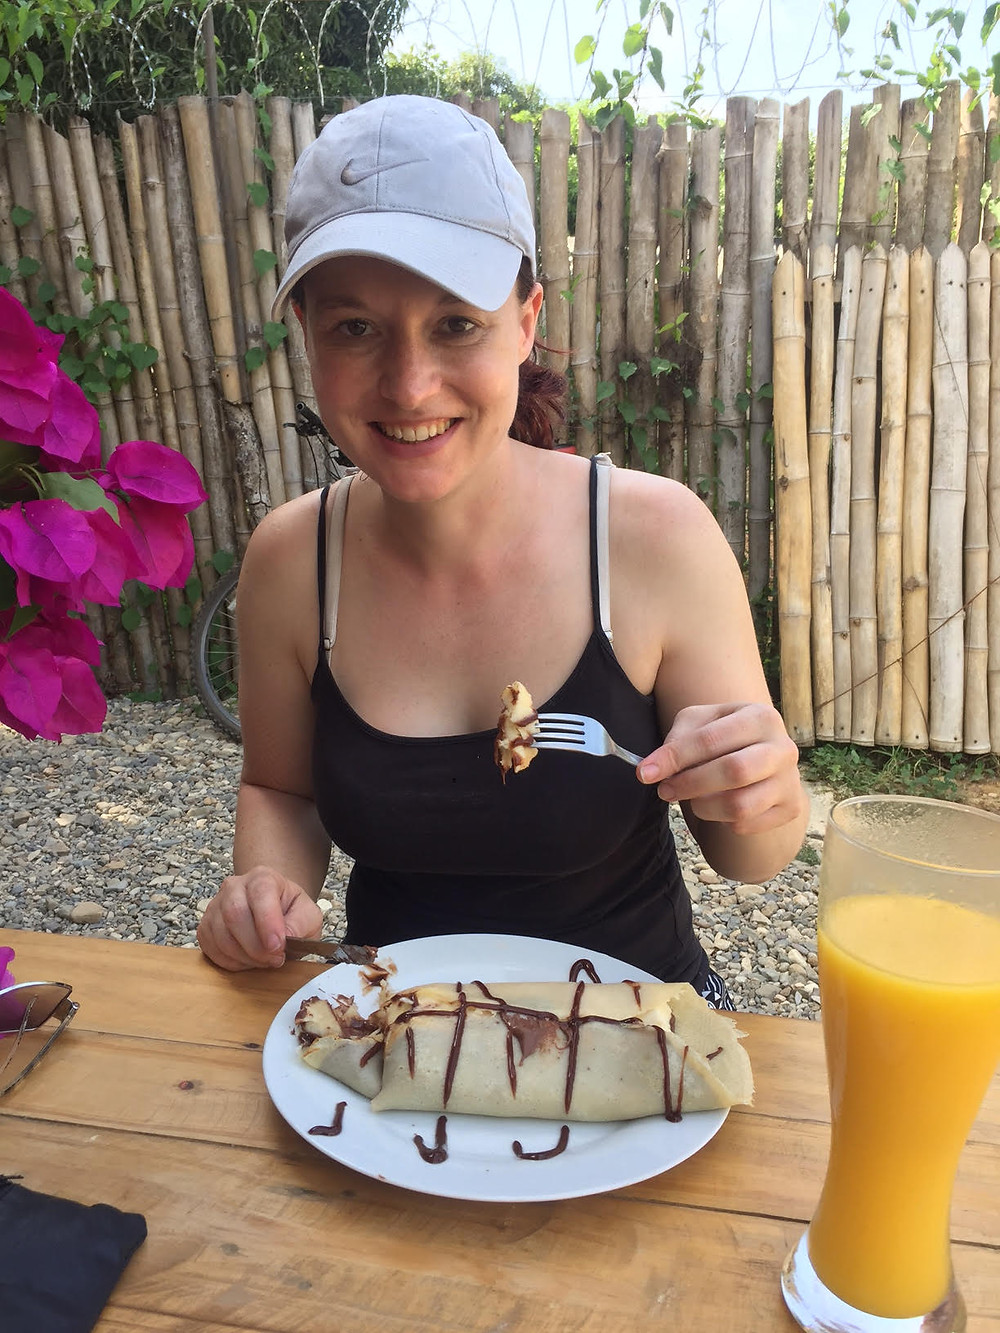 Mahoosive Crepe with banana and nutella